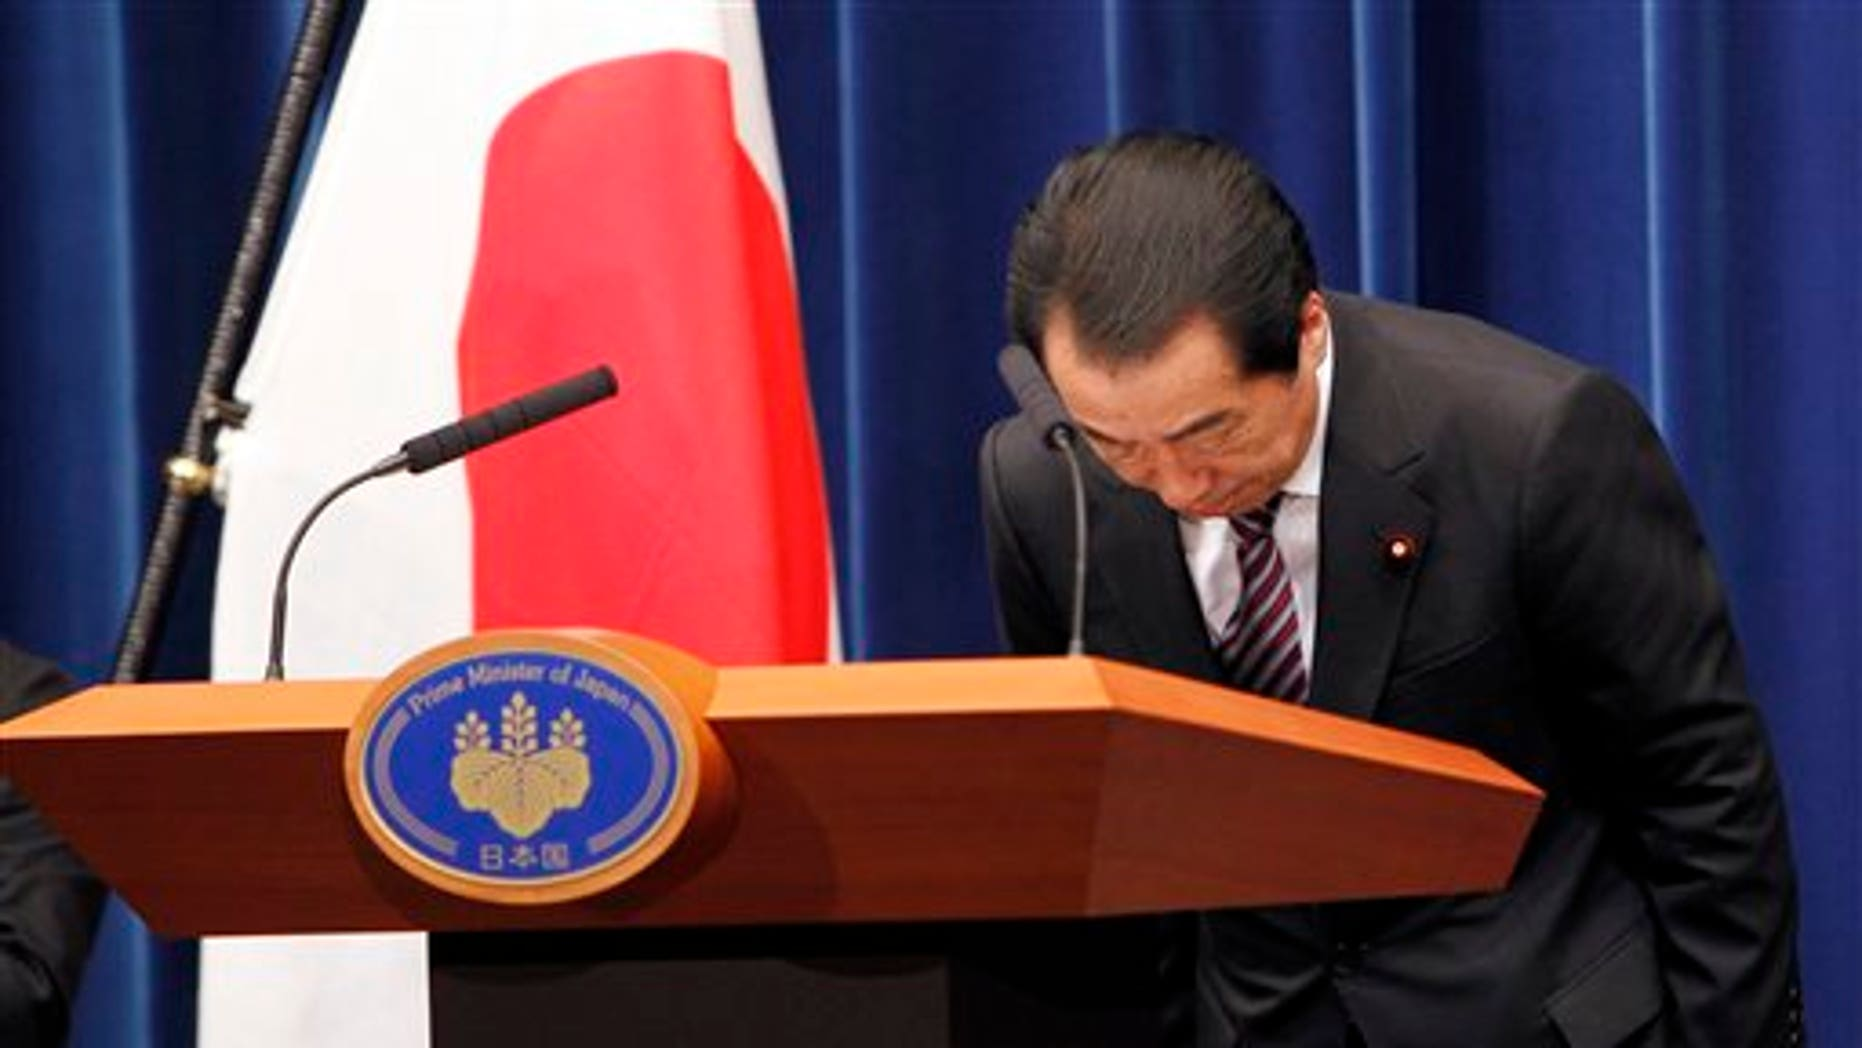 August 26: Japanese Prime Minister Naoto Kan bows during a press conference at his official residence in Tokyo, Japan.